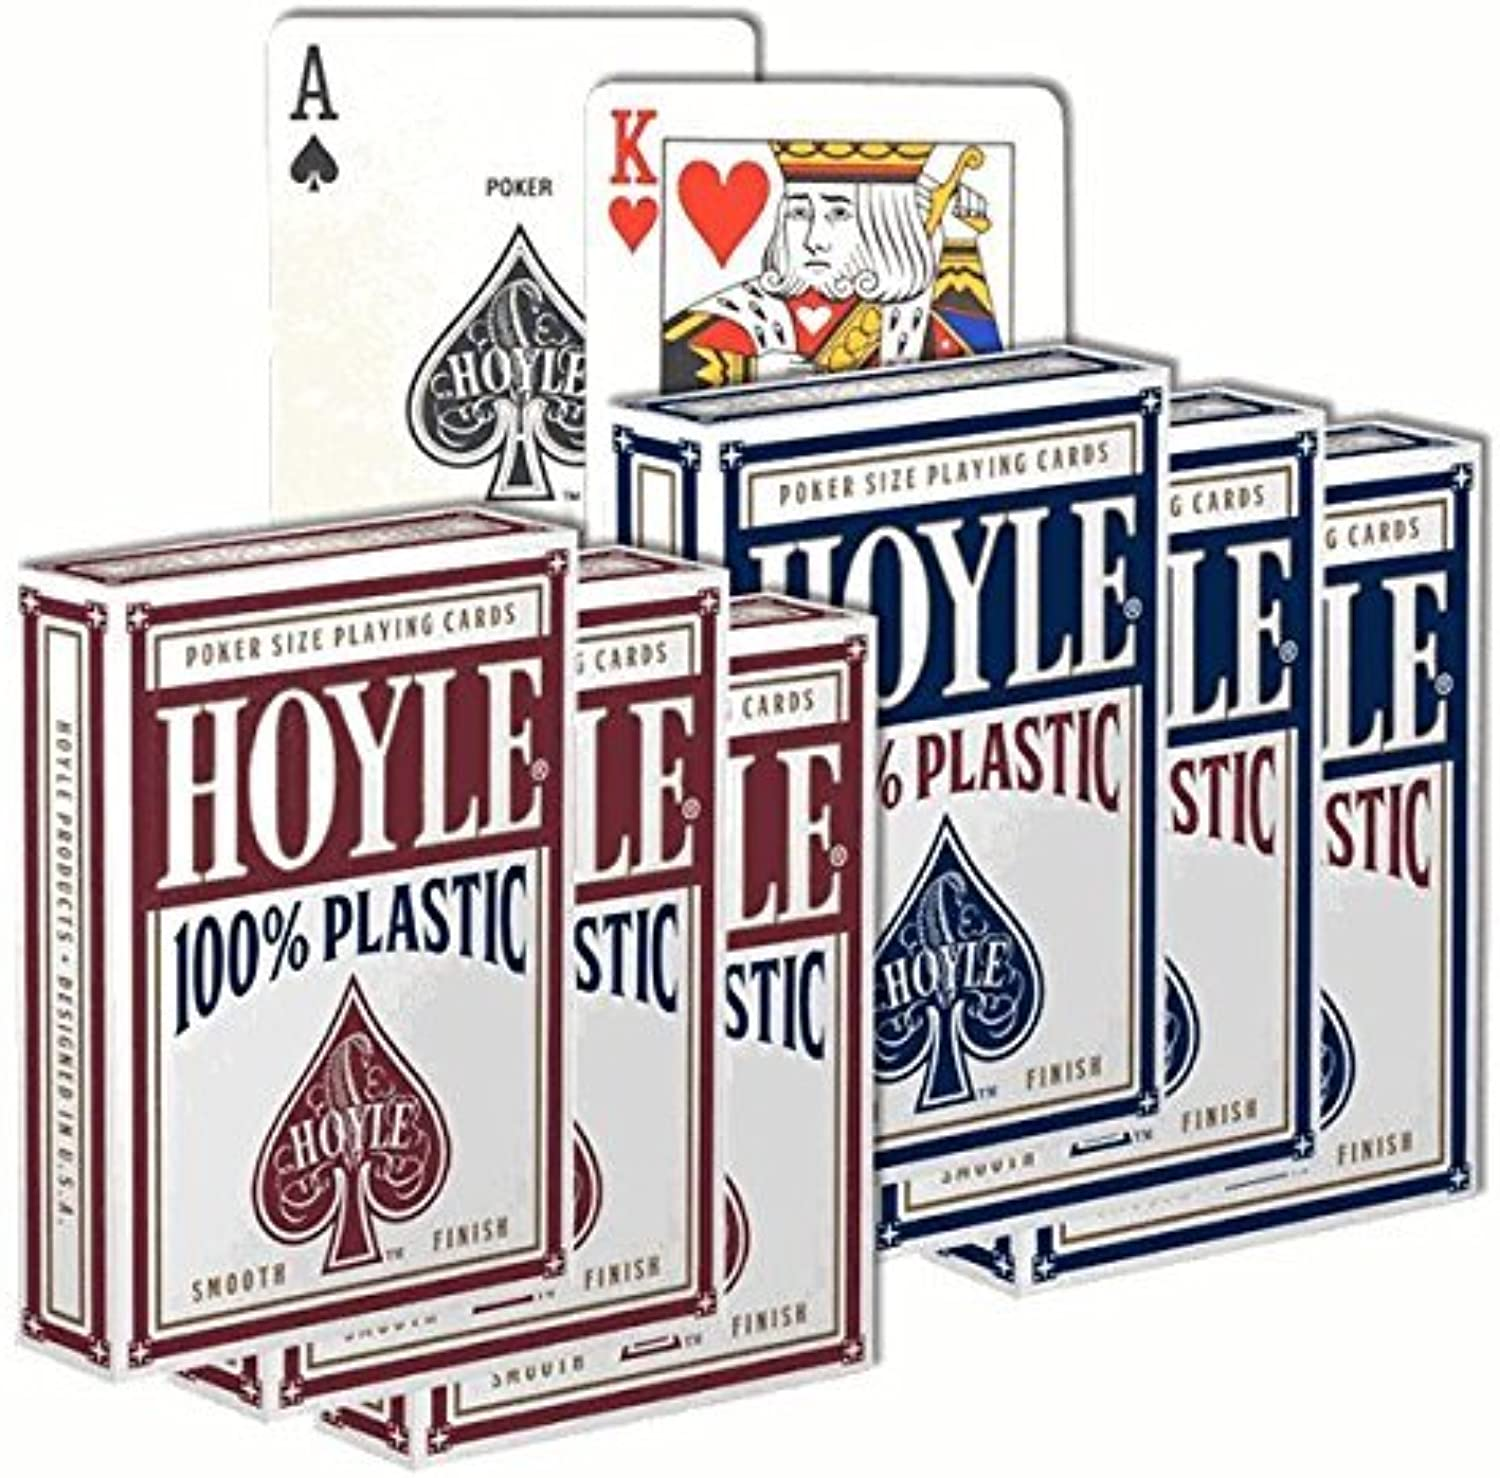 6 Decks of Hoyle 100% Plastic Playing Cards by Hoyle